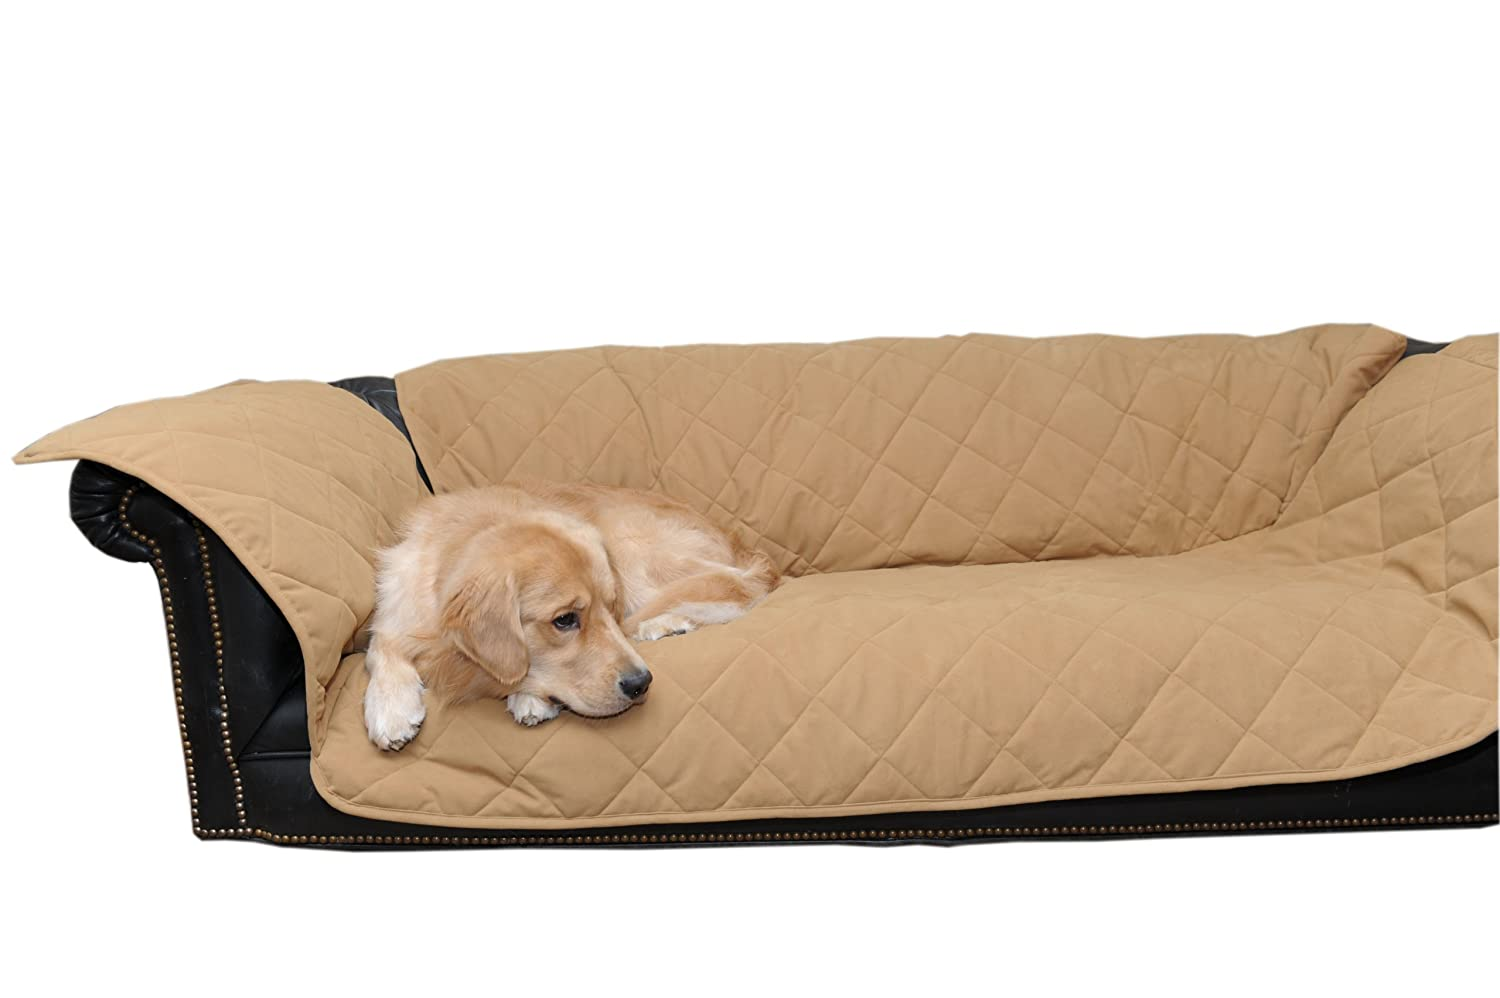 Caramel 27'l x 72'w x 34'hCPC Diamond Quilted Couch Predector for Dogs and Cats, 72 x 27 x 34Inch, Saddle